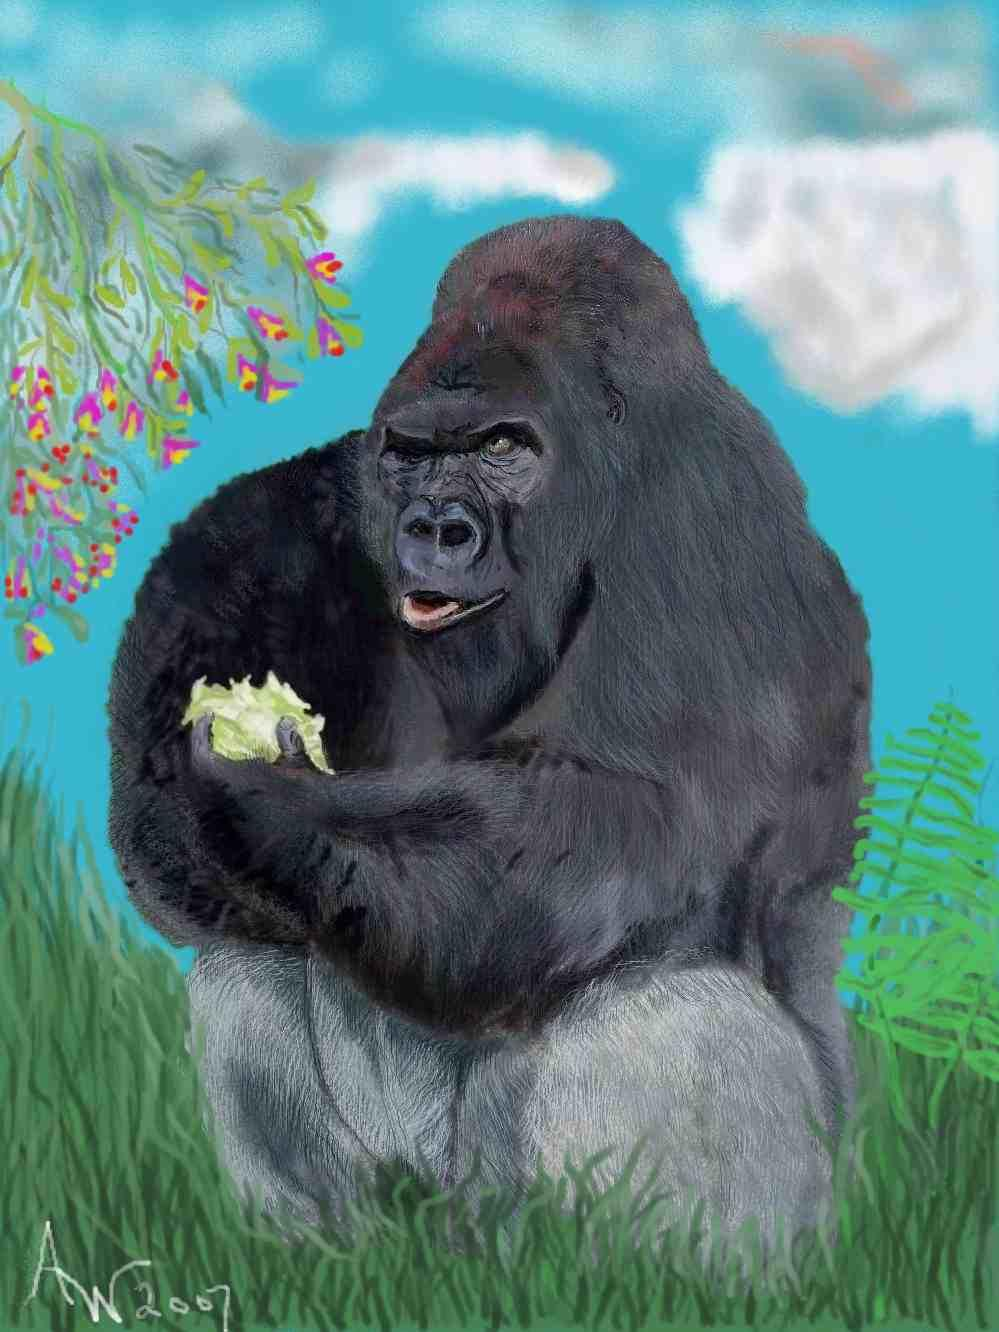 Silver Back Gorilla with lettuce by Ace10